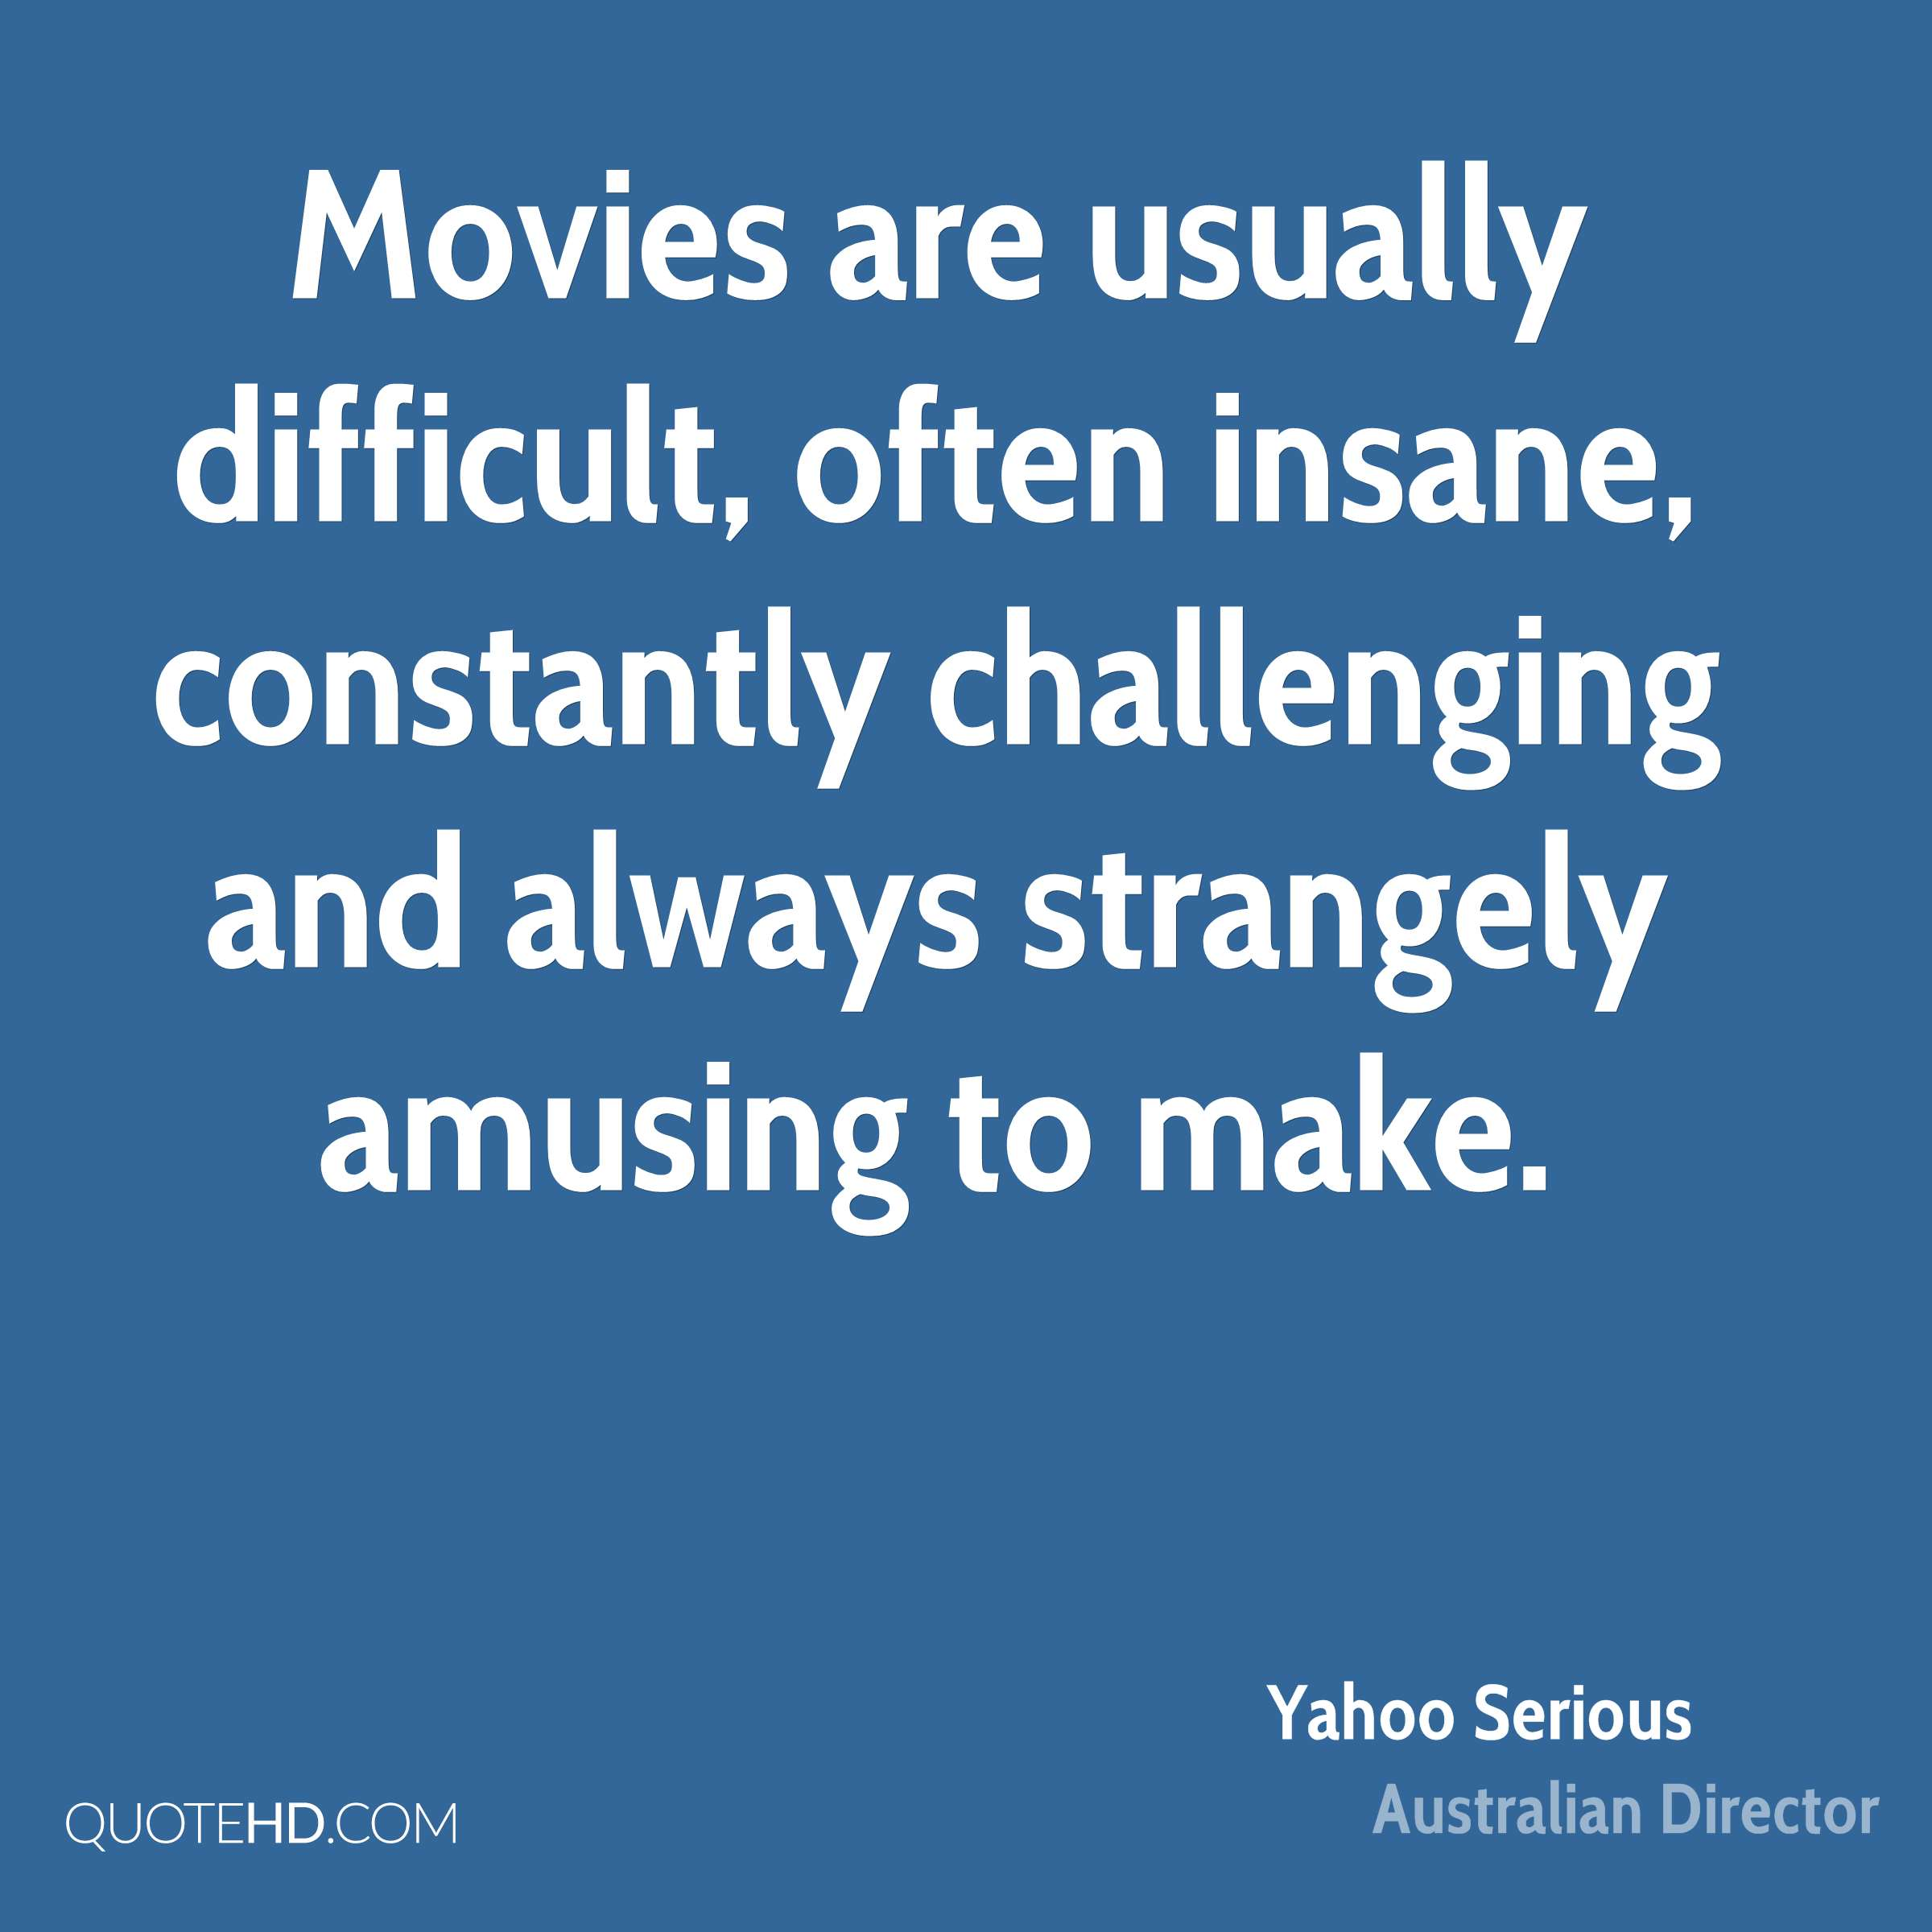 Movies are usually difficult, often insane, constantly challenging and always strangely amusing to make.